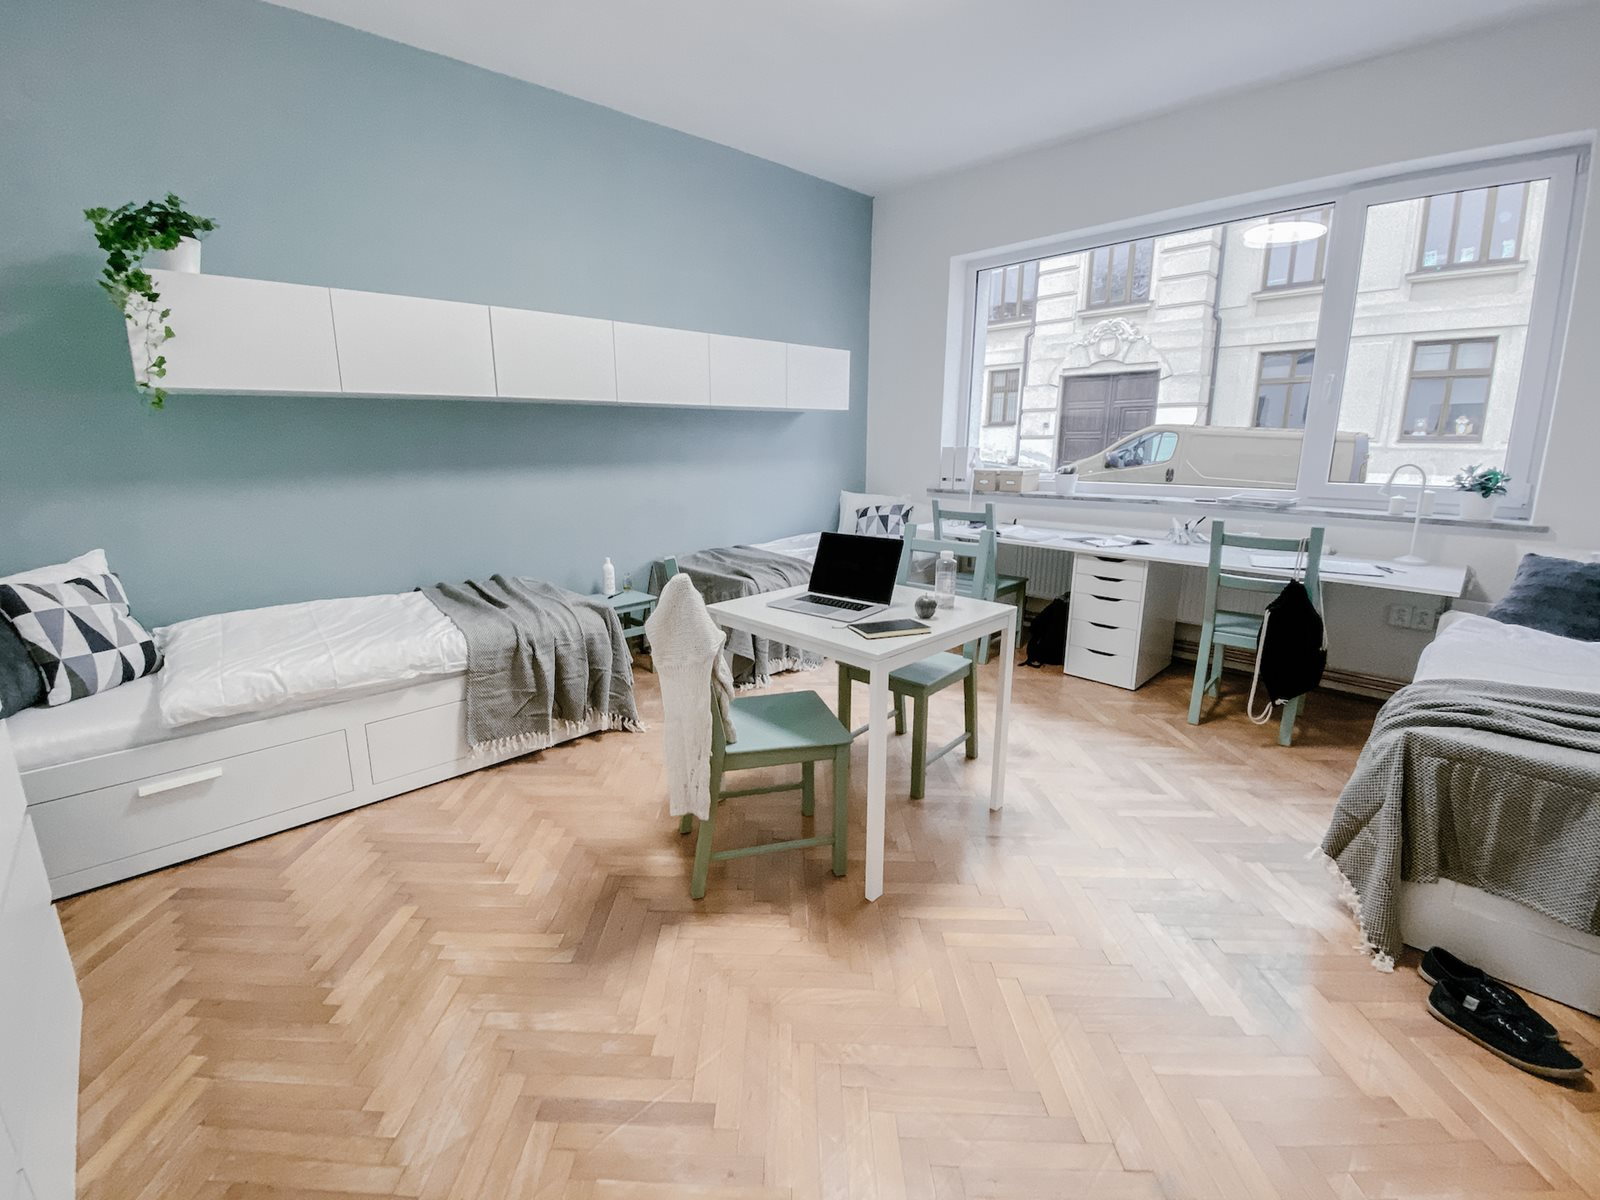 Very spacious triple room in boutique style house in Brno